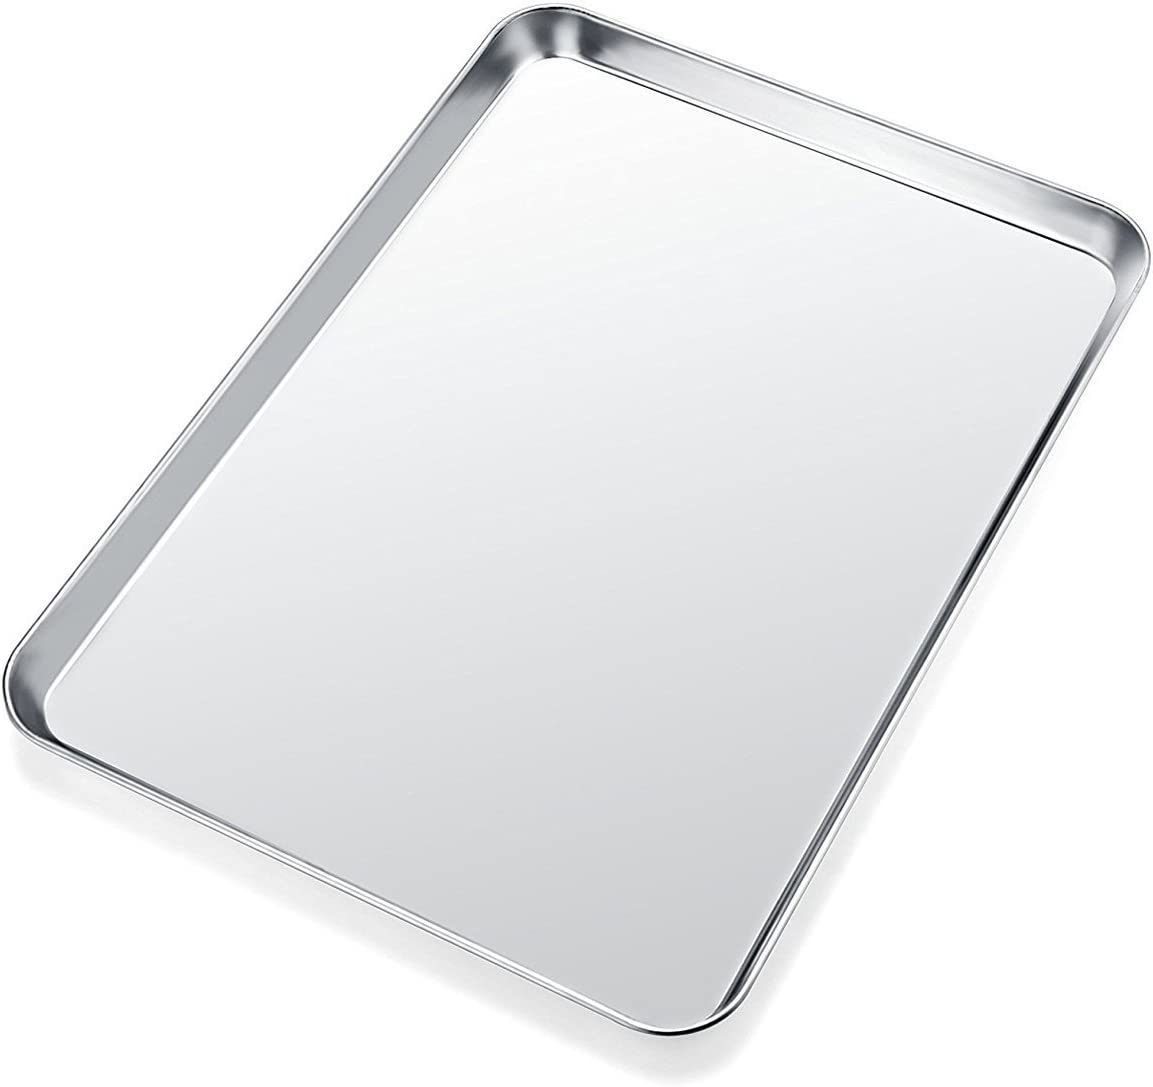 Baking Sheet, Yododo Stainless Steel Cookie Sheet Toaster Oven Tray Pan Rectangle Size 16 x 12 x 1 inch, Non Toxic & Healthy, Superior Mirror Finish & Easy Clean, Dishwasher Safe